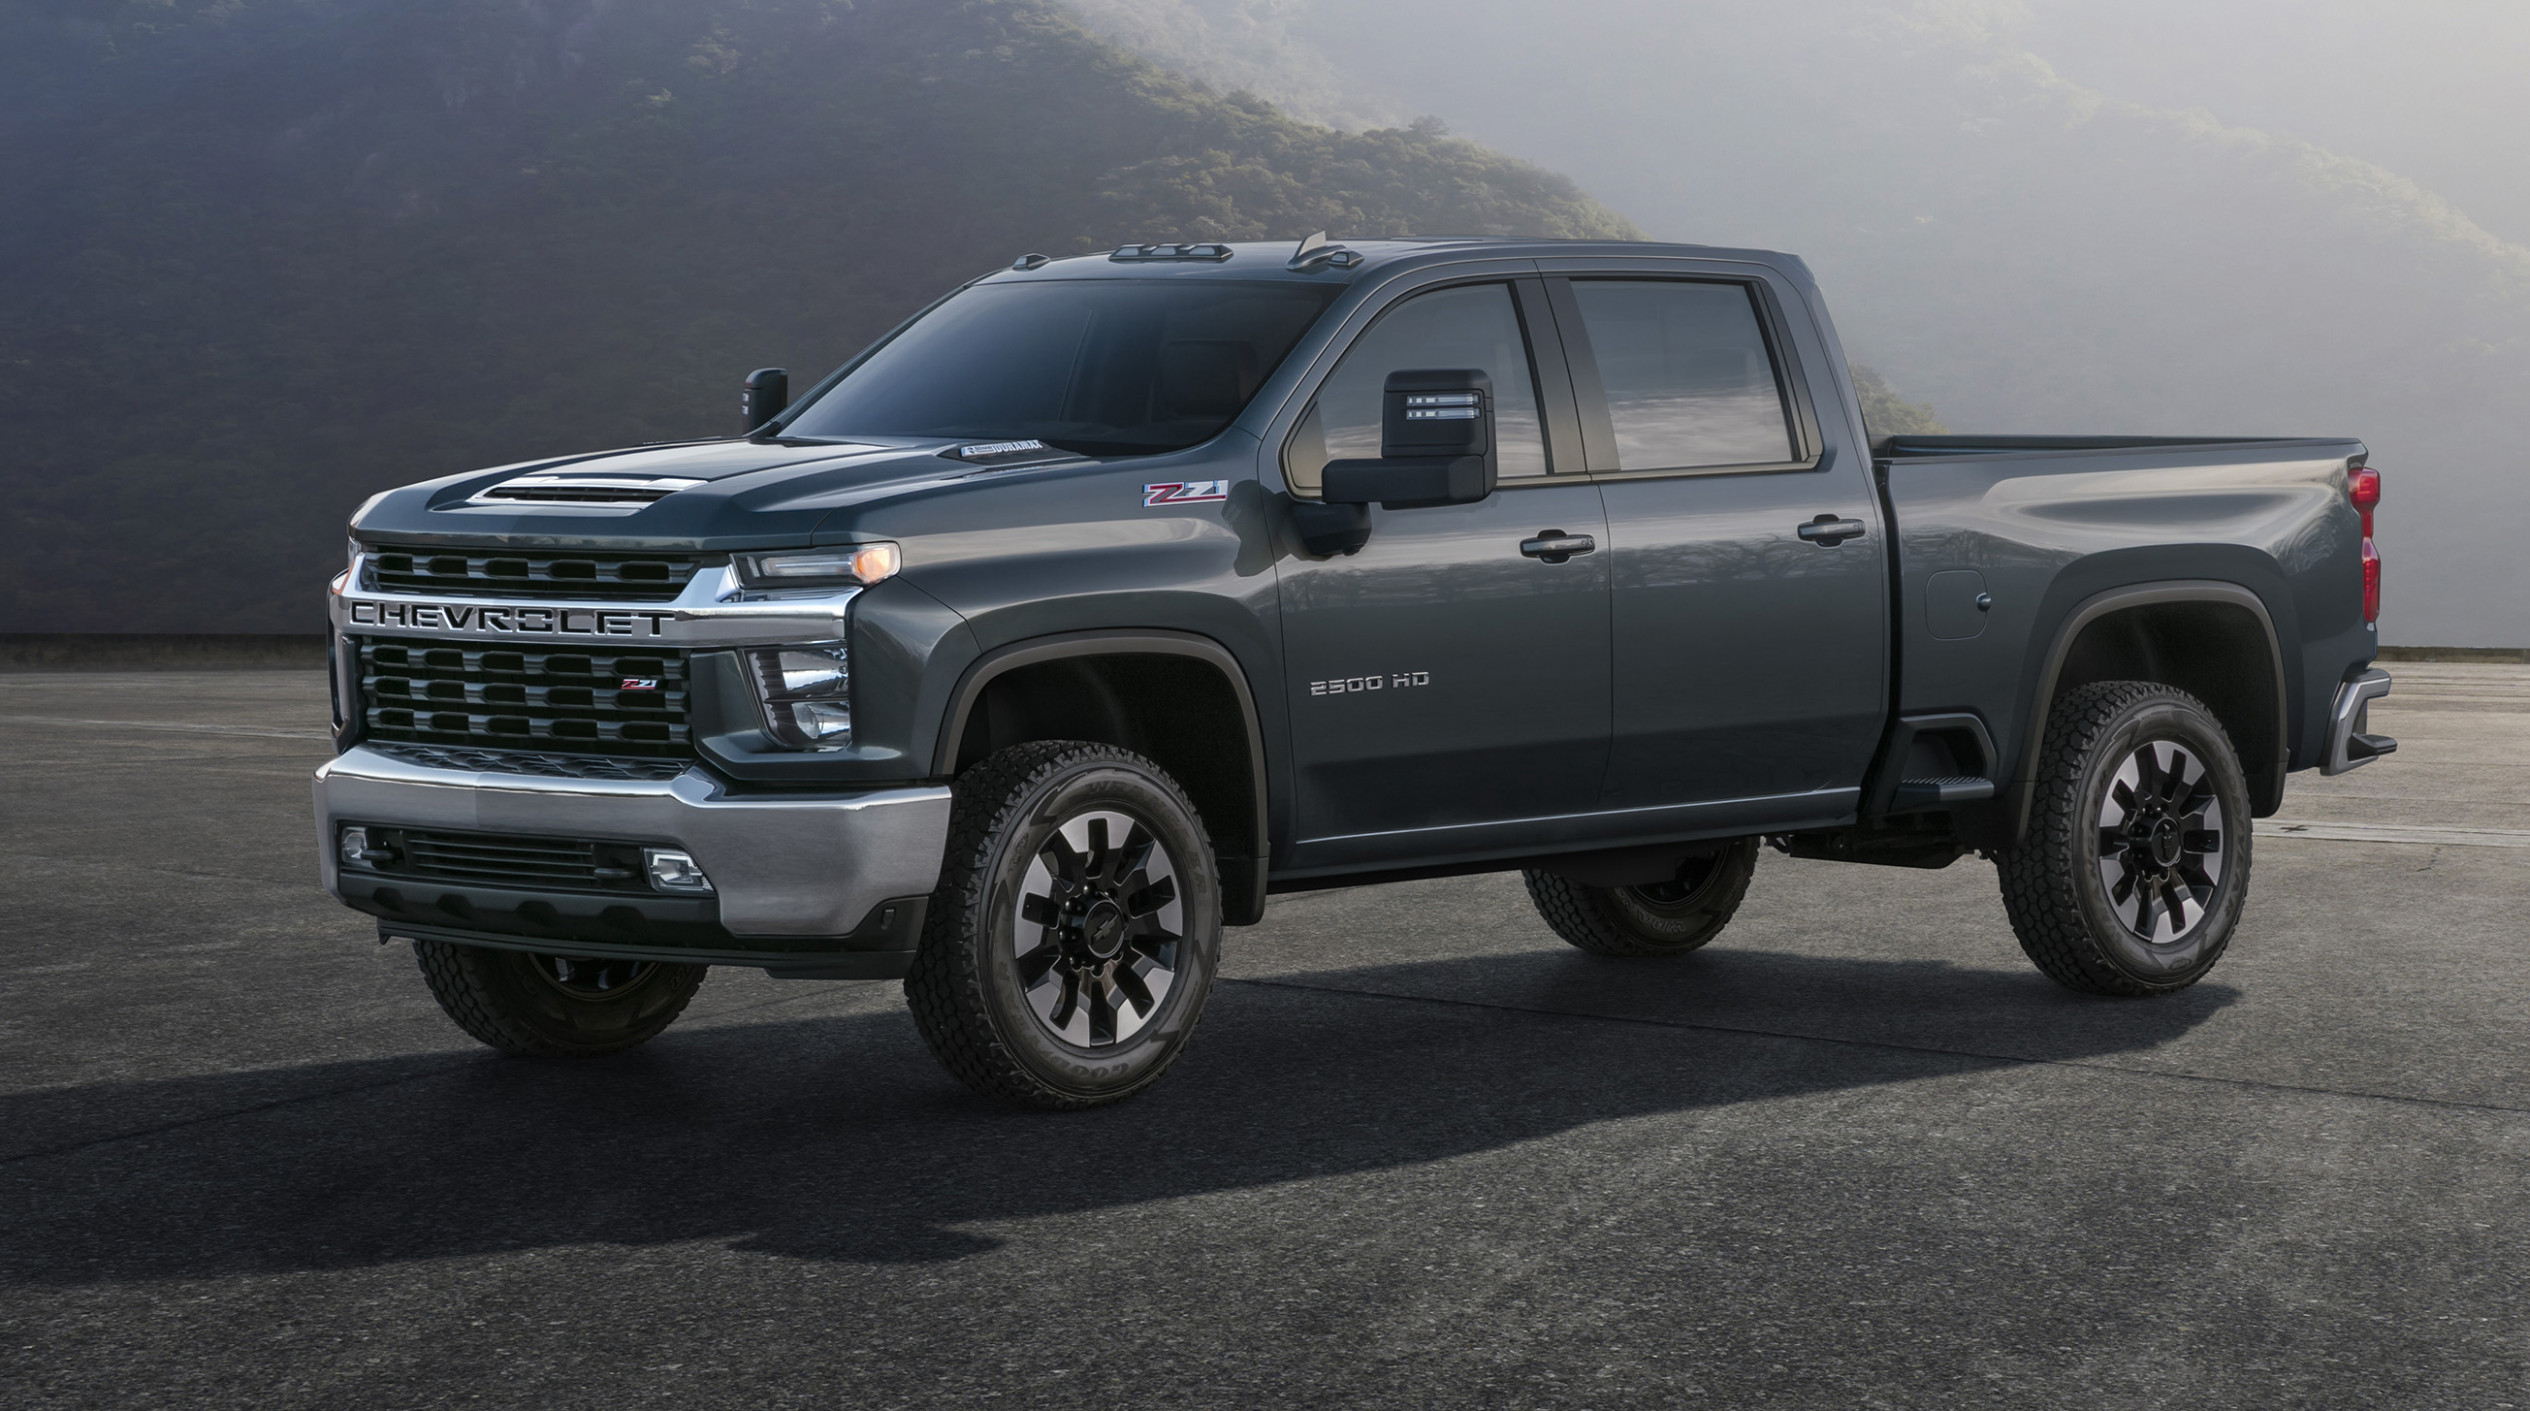 7 Things You Have To Know About The 7 Chevrolet Silverado HD ..